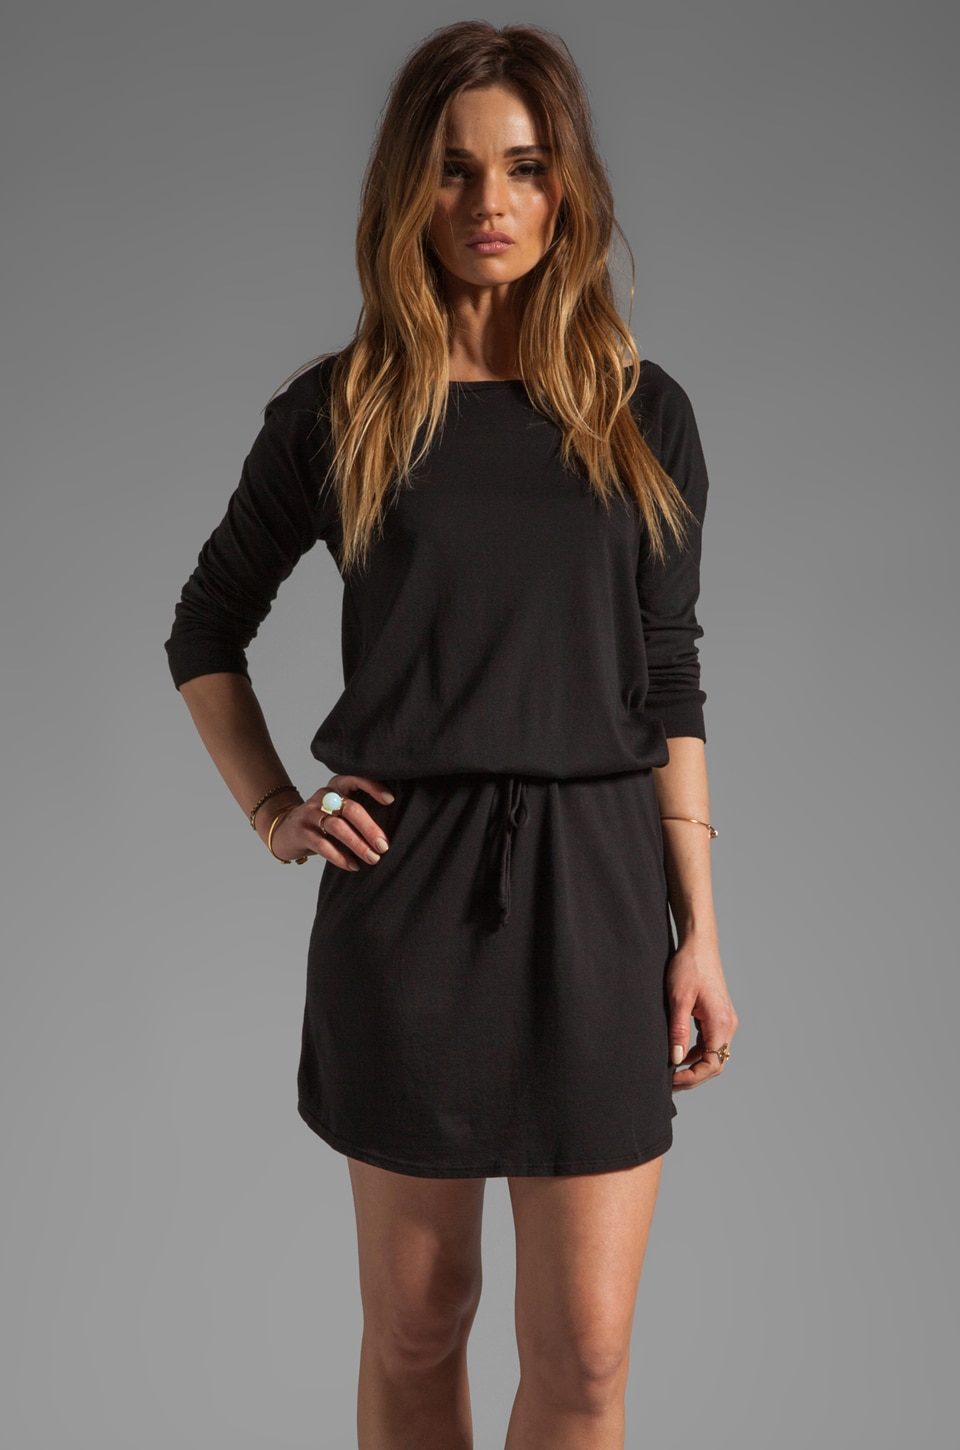 Soft Joie Analee Dress in Caviar